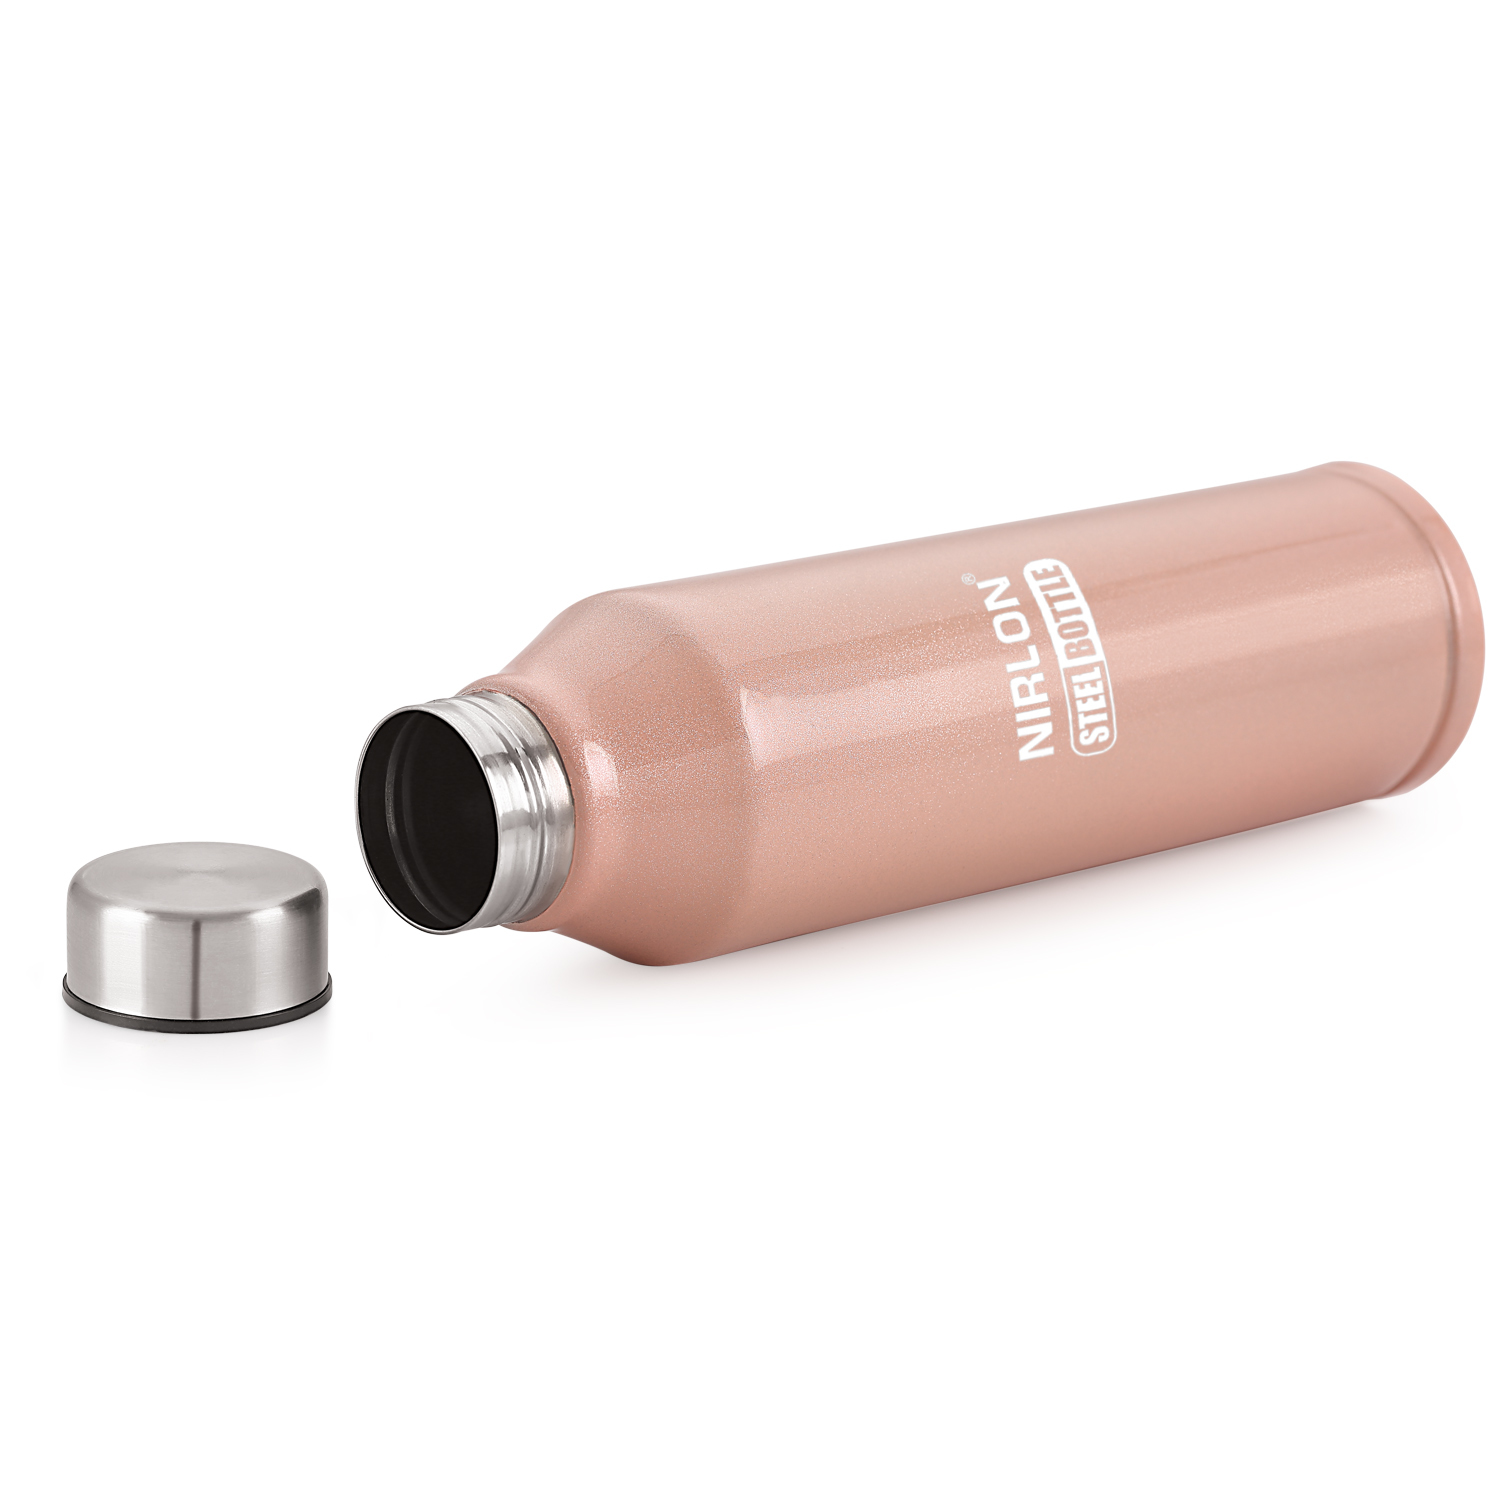 STAINLESS STEEL BOTTLE PEACH